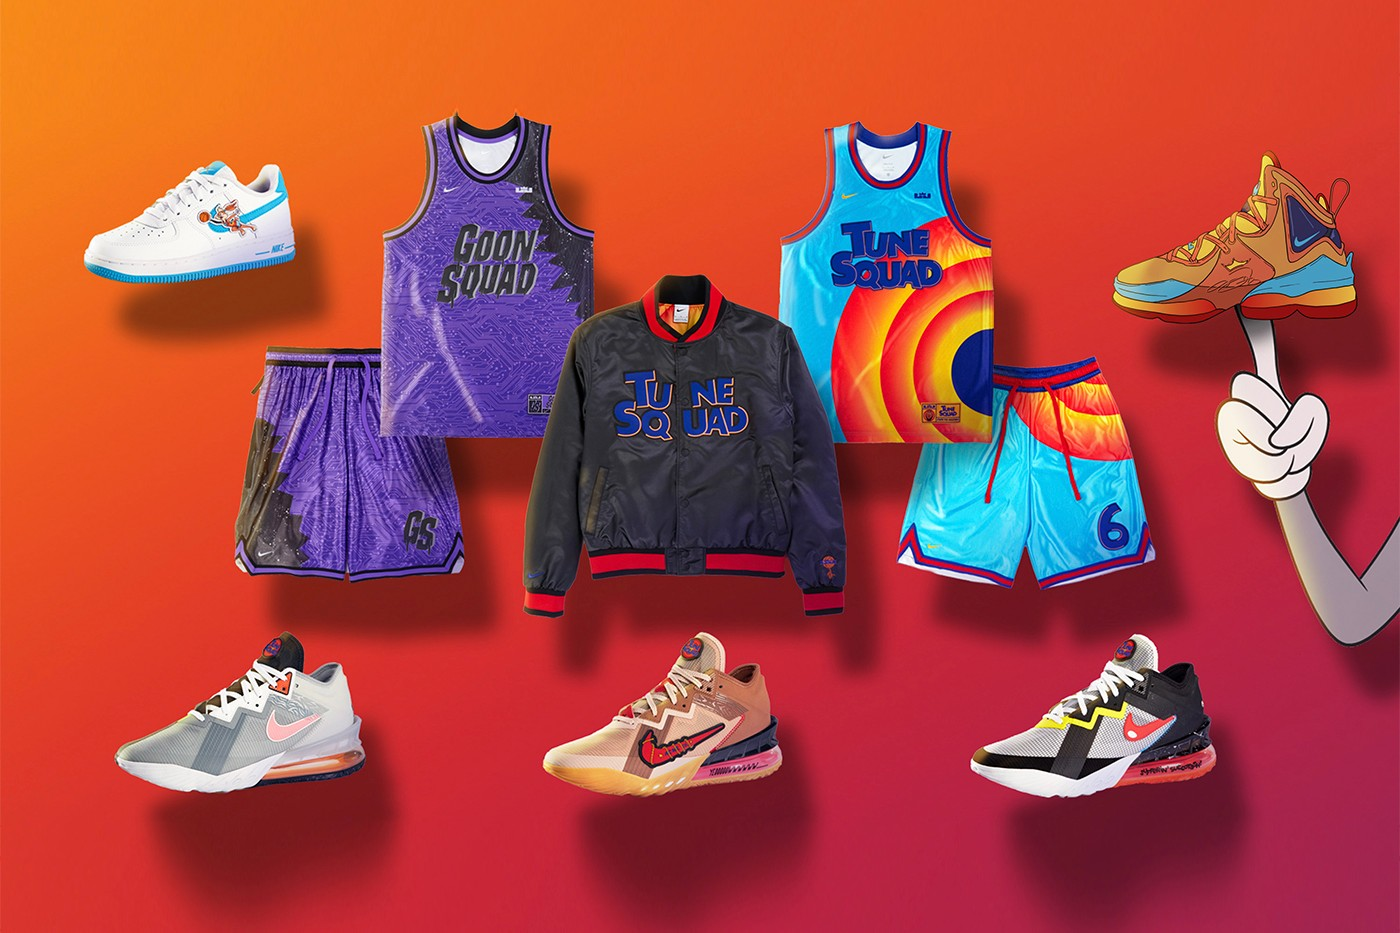 Nike/Converse Space Jam: A New Legacy